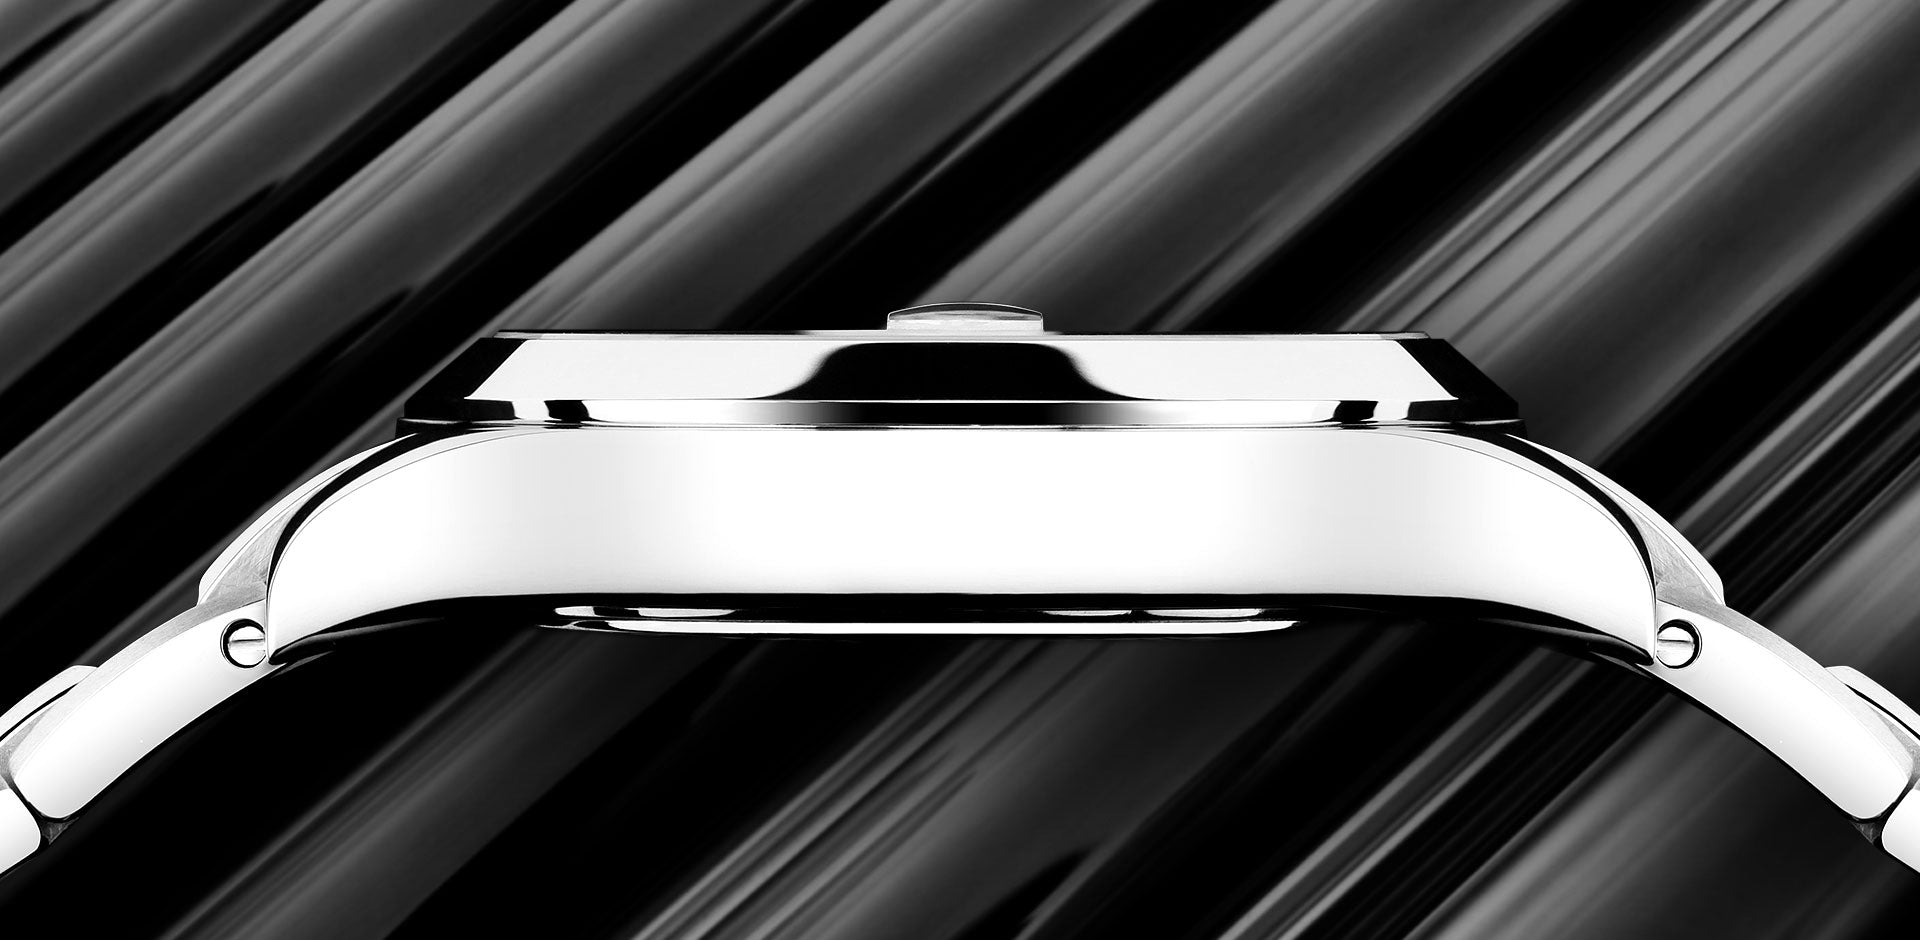 904L Grade Stainless Steel, image from BALL watch